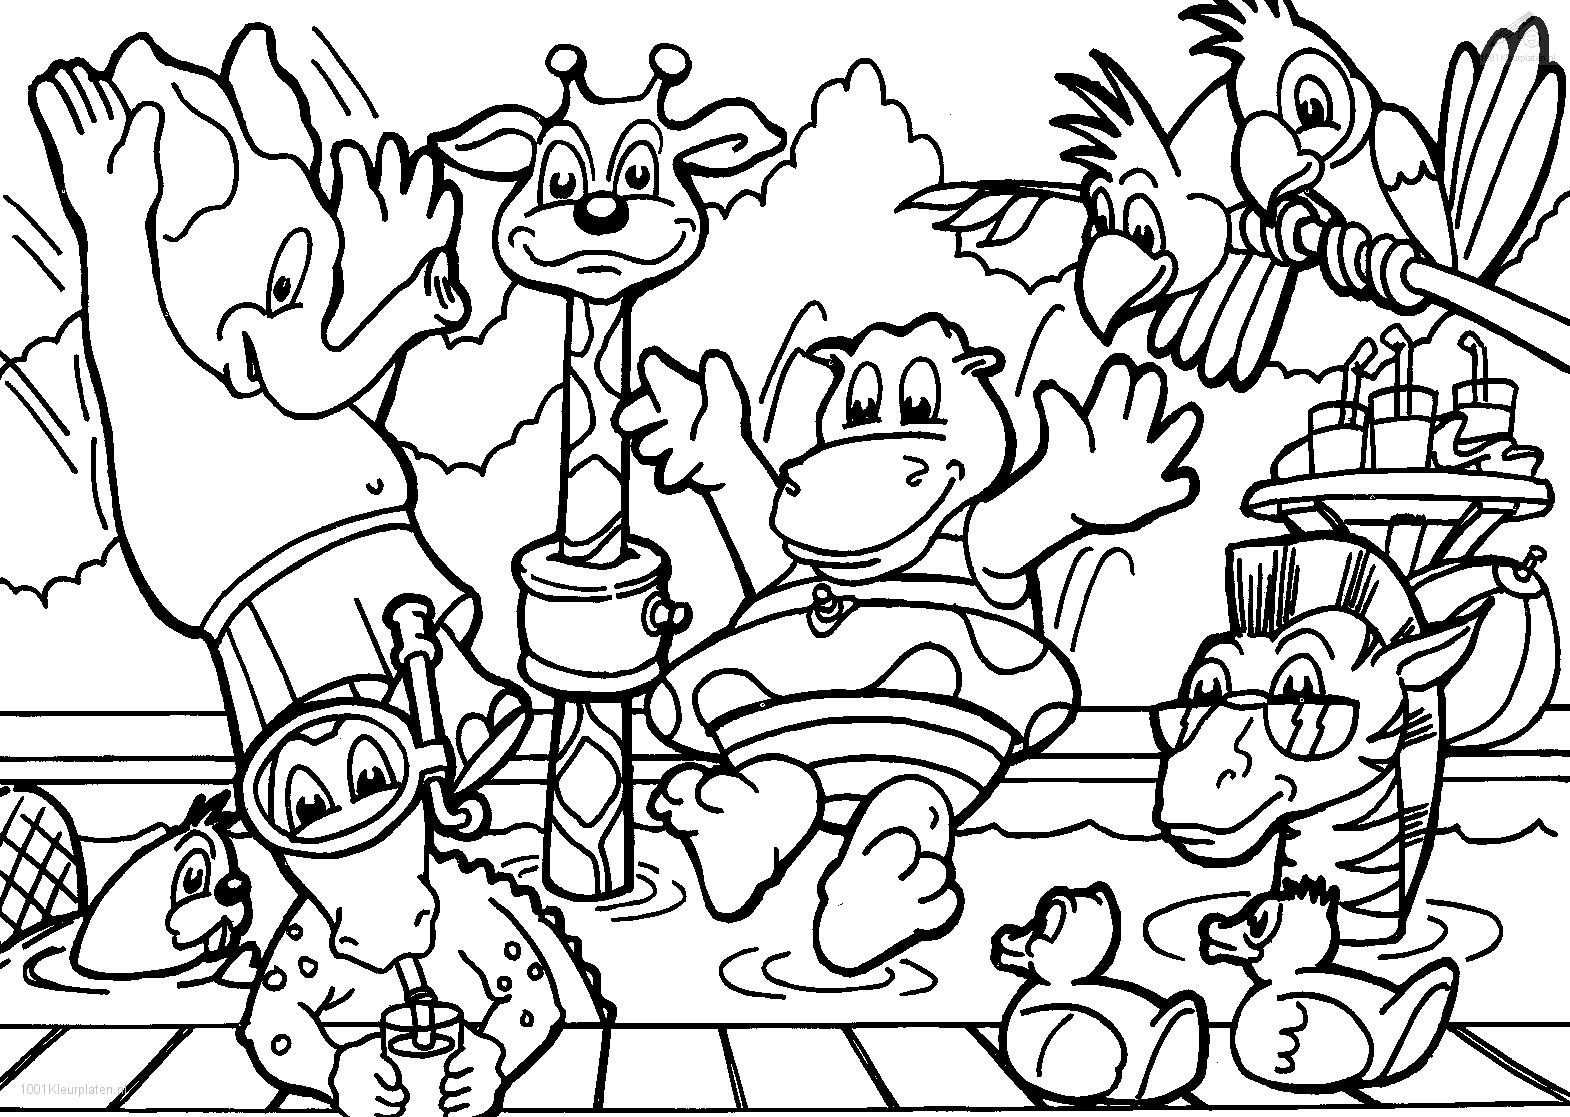 Zoo Coloring Pages For Kids at GetDrawings.com   Free for ...